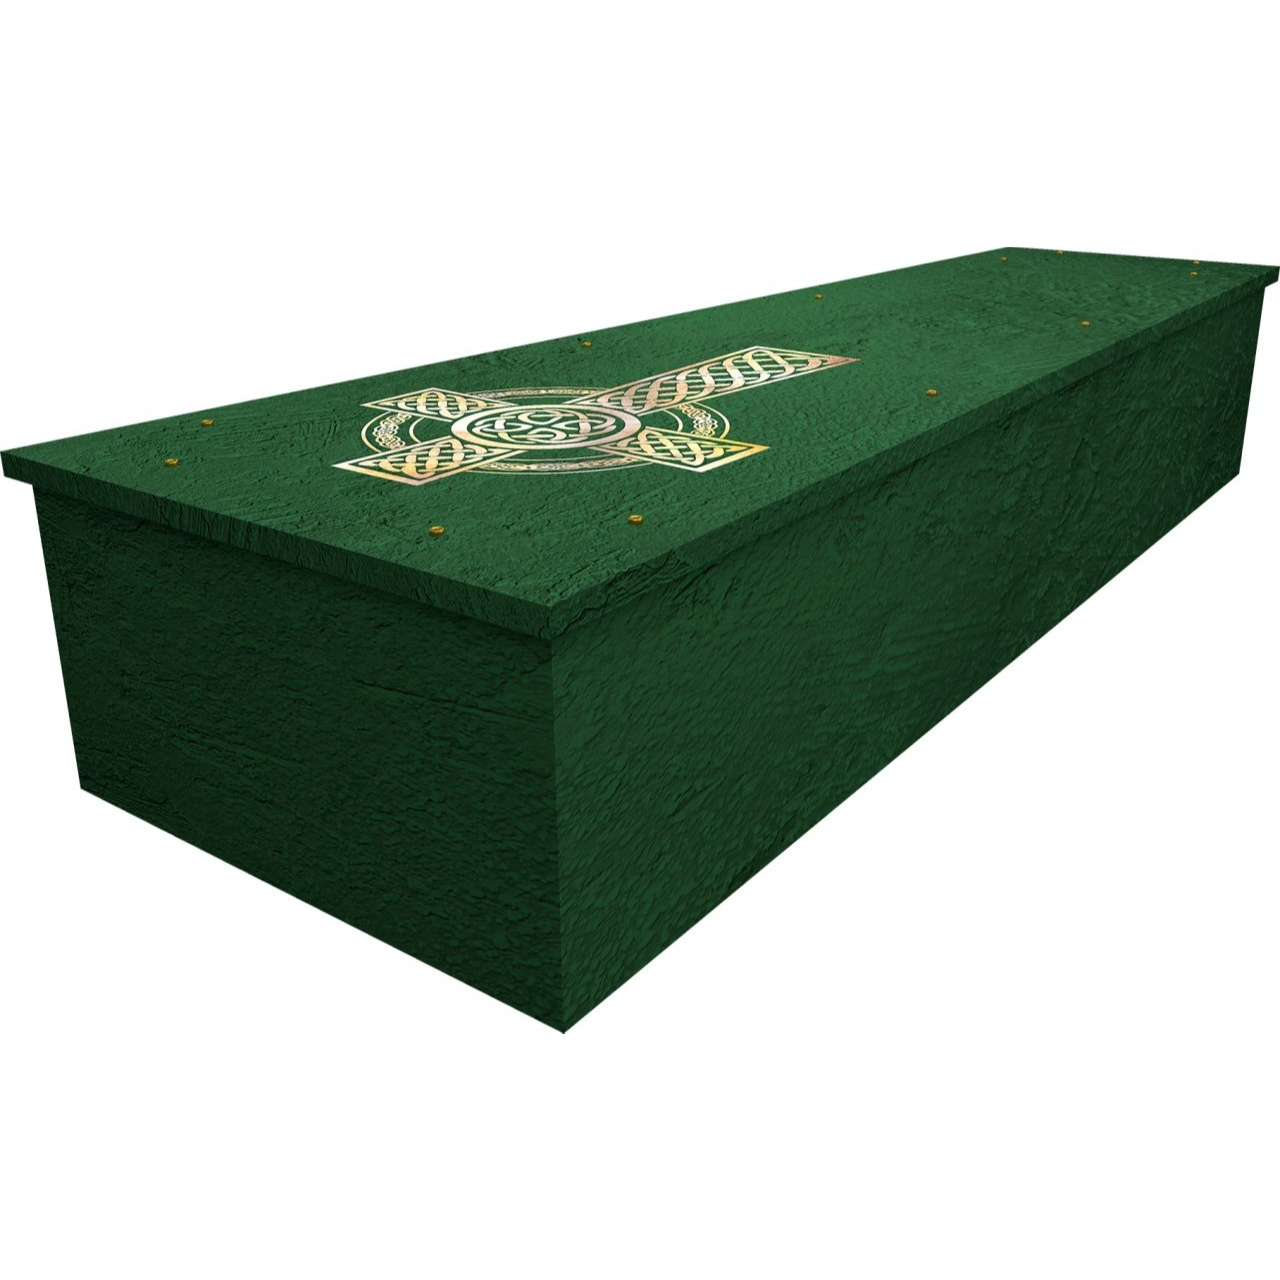 Celtic Cross Cardboard Coffin